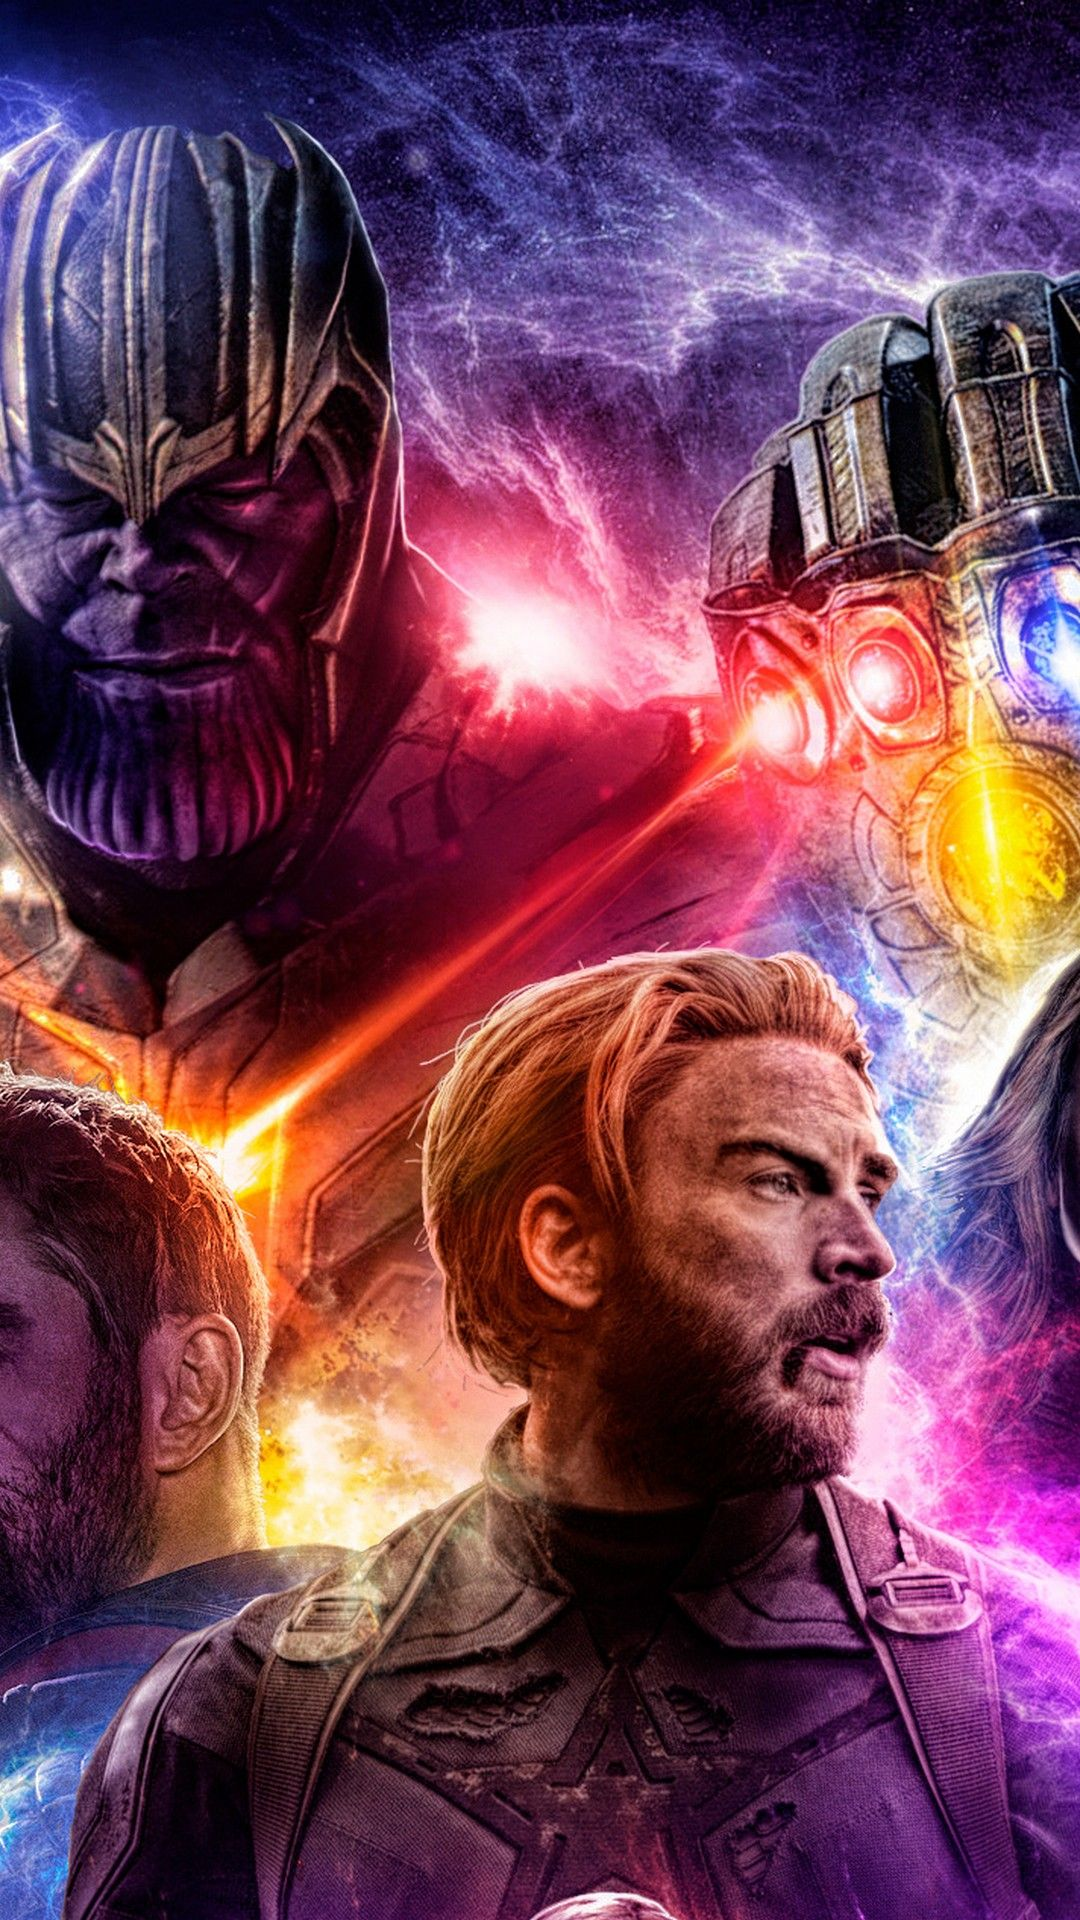 Avengers Endgame Wallpaper iPhone Avengers poster